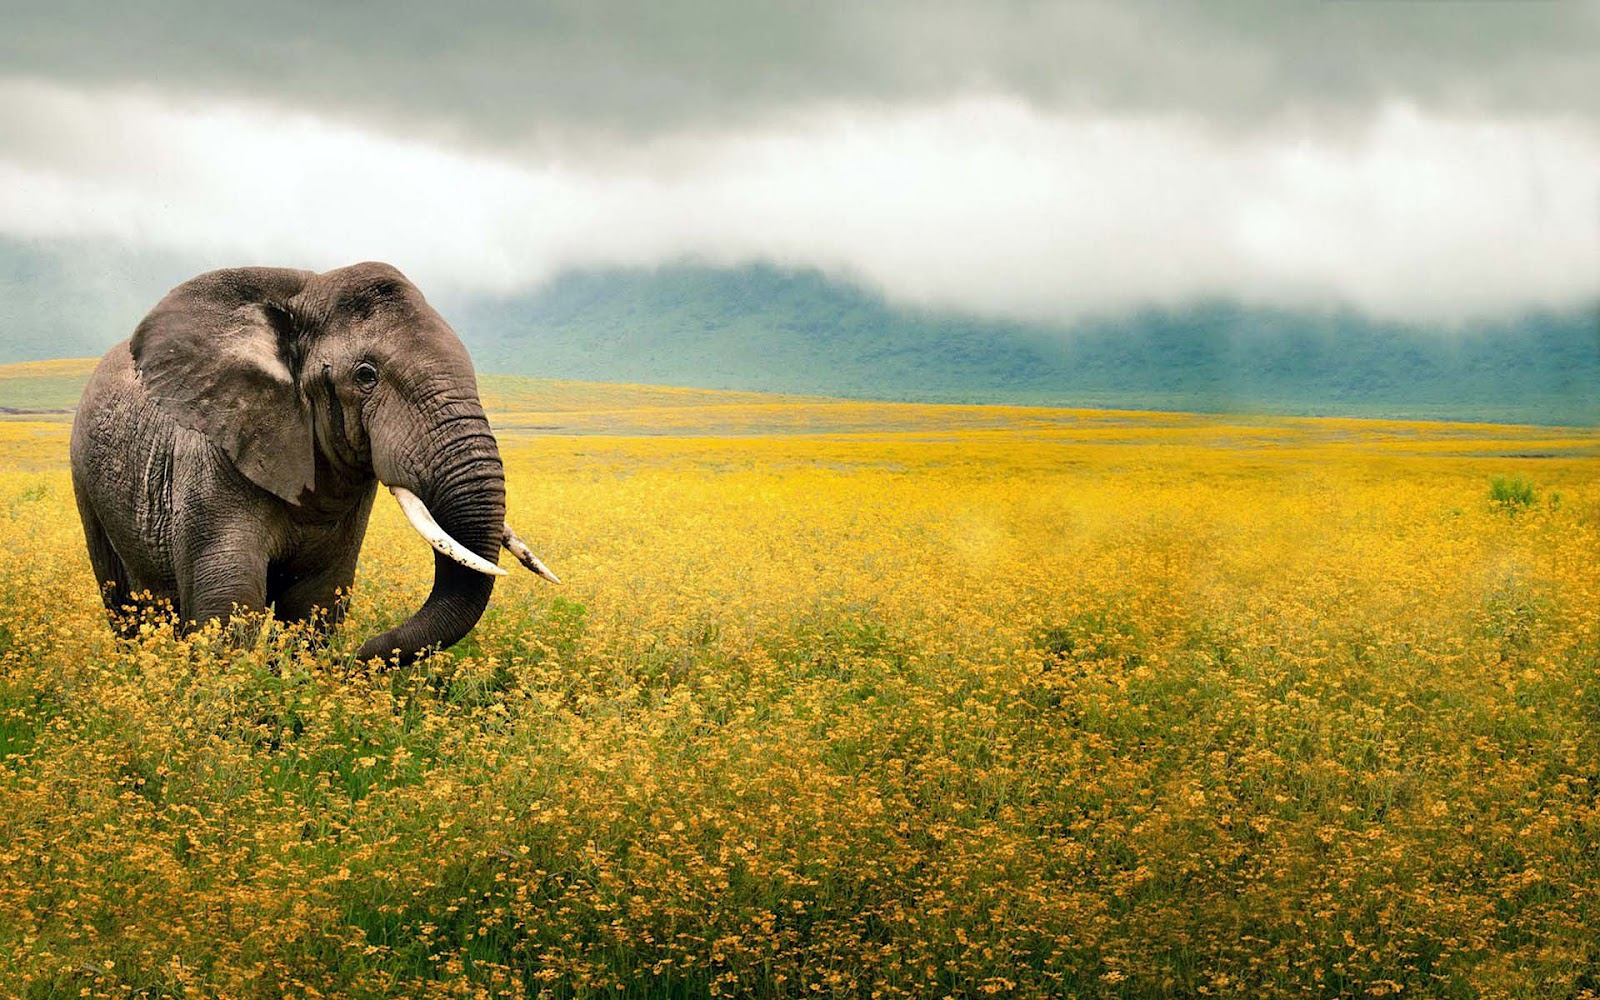 Collection of Elephant Hd Wallpaper on HDWallpapers 1600x1000